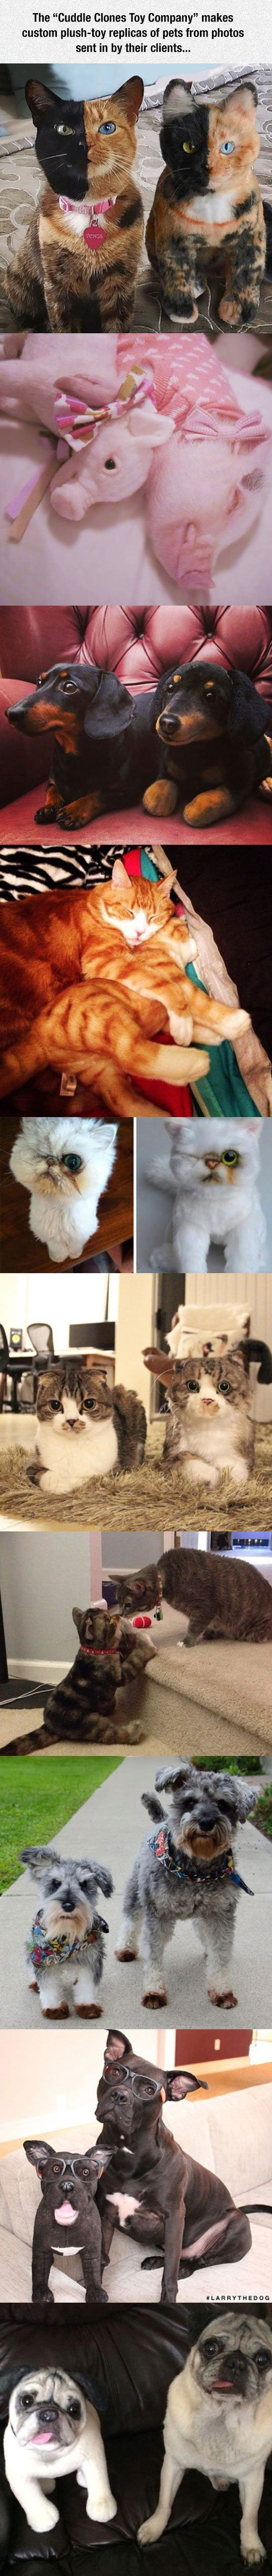 "The ""Cuddle Clones Toy Company"" create custom stuffed animals of your special pet and offer a variety of unique pet gifts, all you need to do is to send them one photos of your pets. Here is the link: Cuddle Clones"